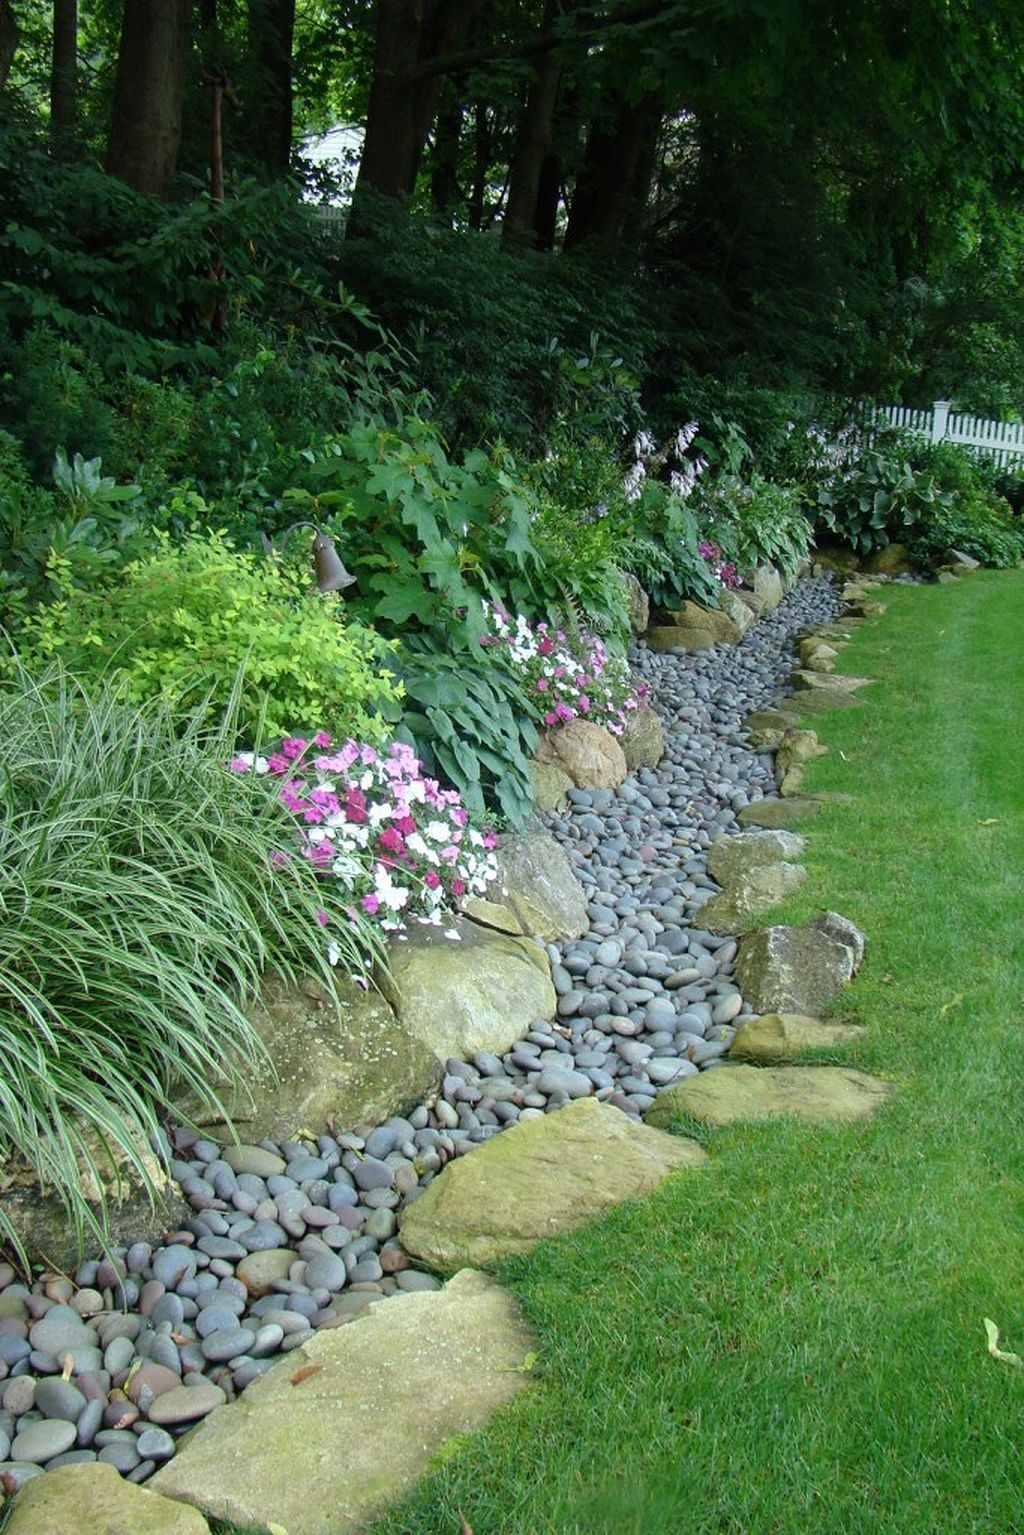 Stunning 30 perfect river rock borders at garden https gardenmagz com 30 perfect river rock borders at garden